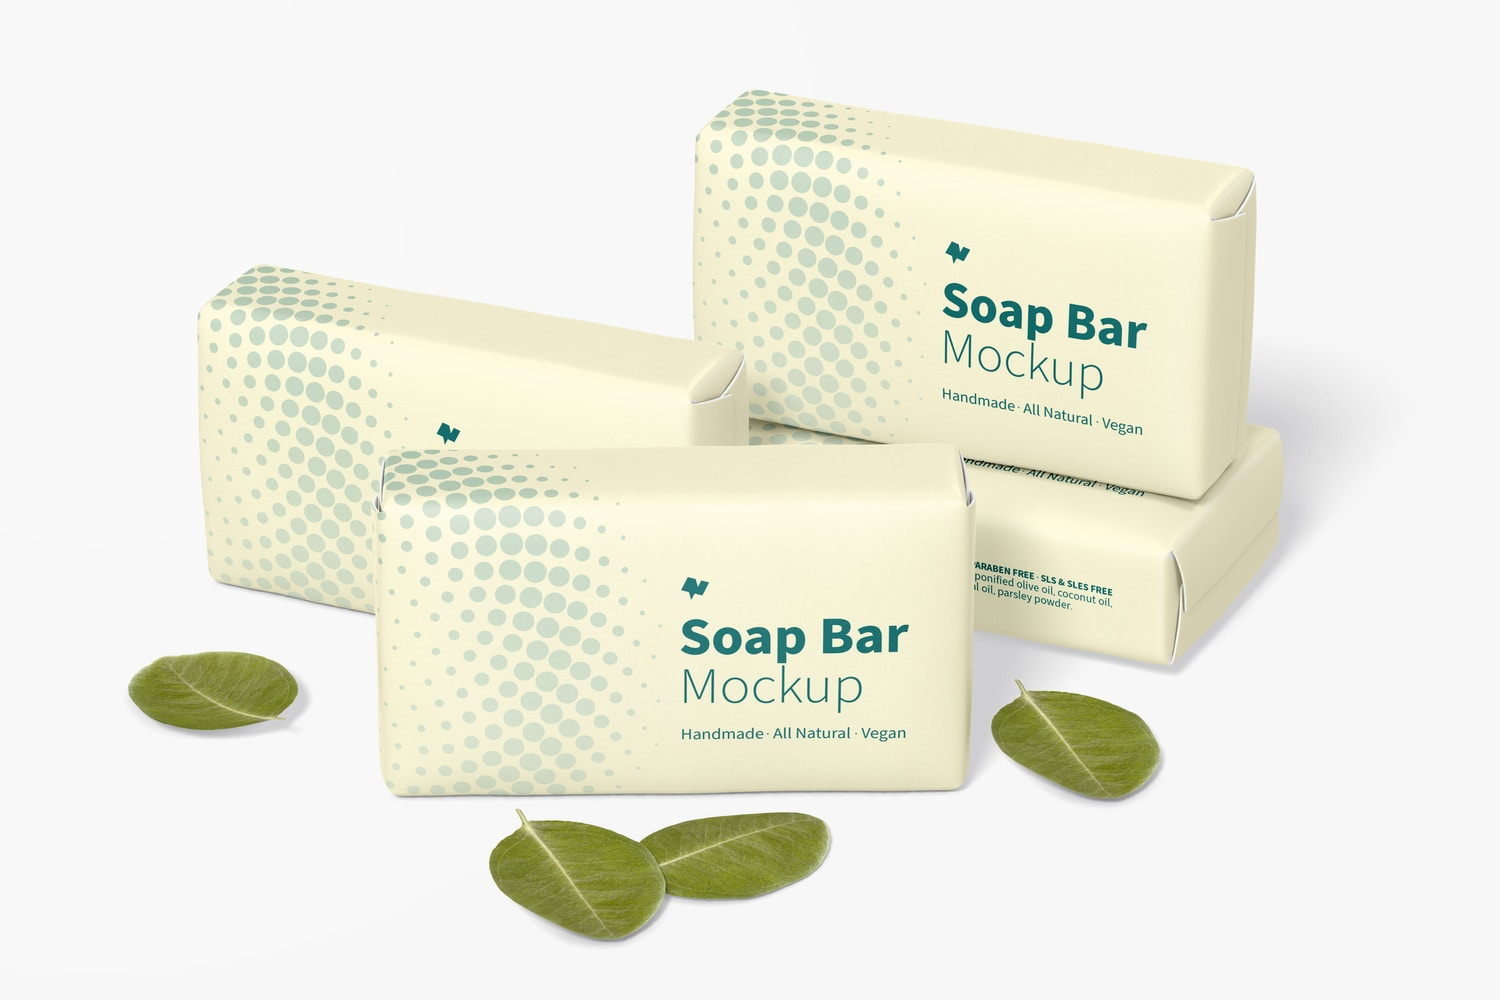 Soap Bars with Paper Package Set Mockup